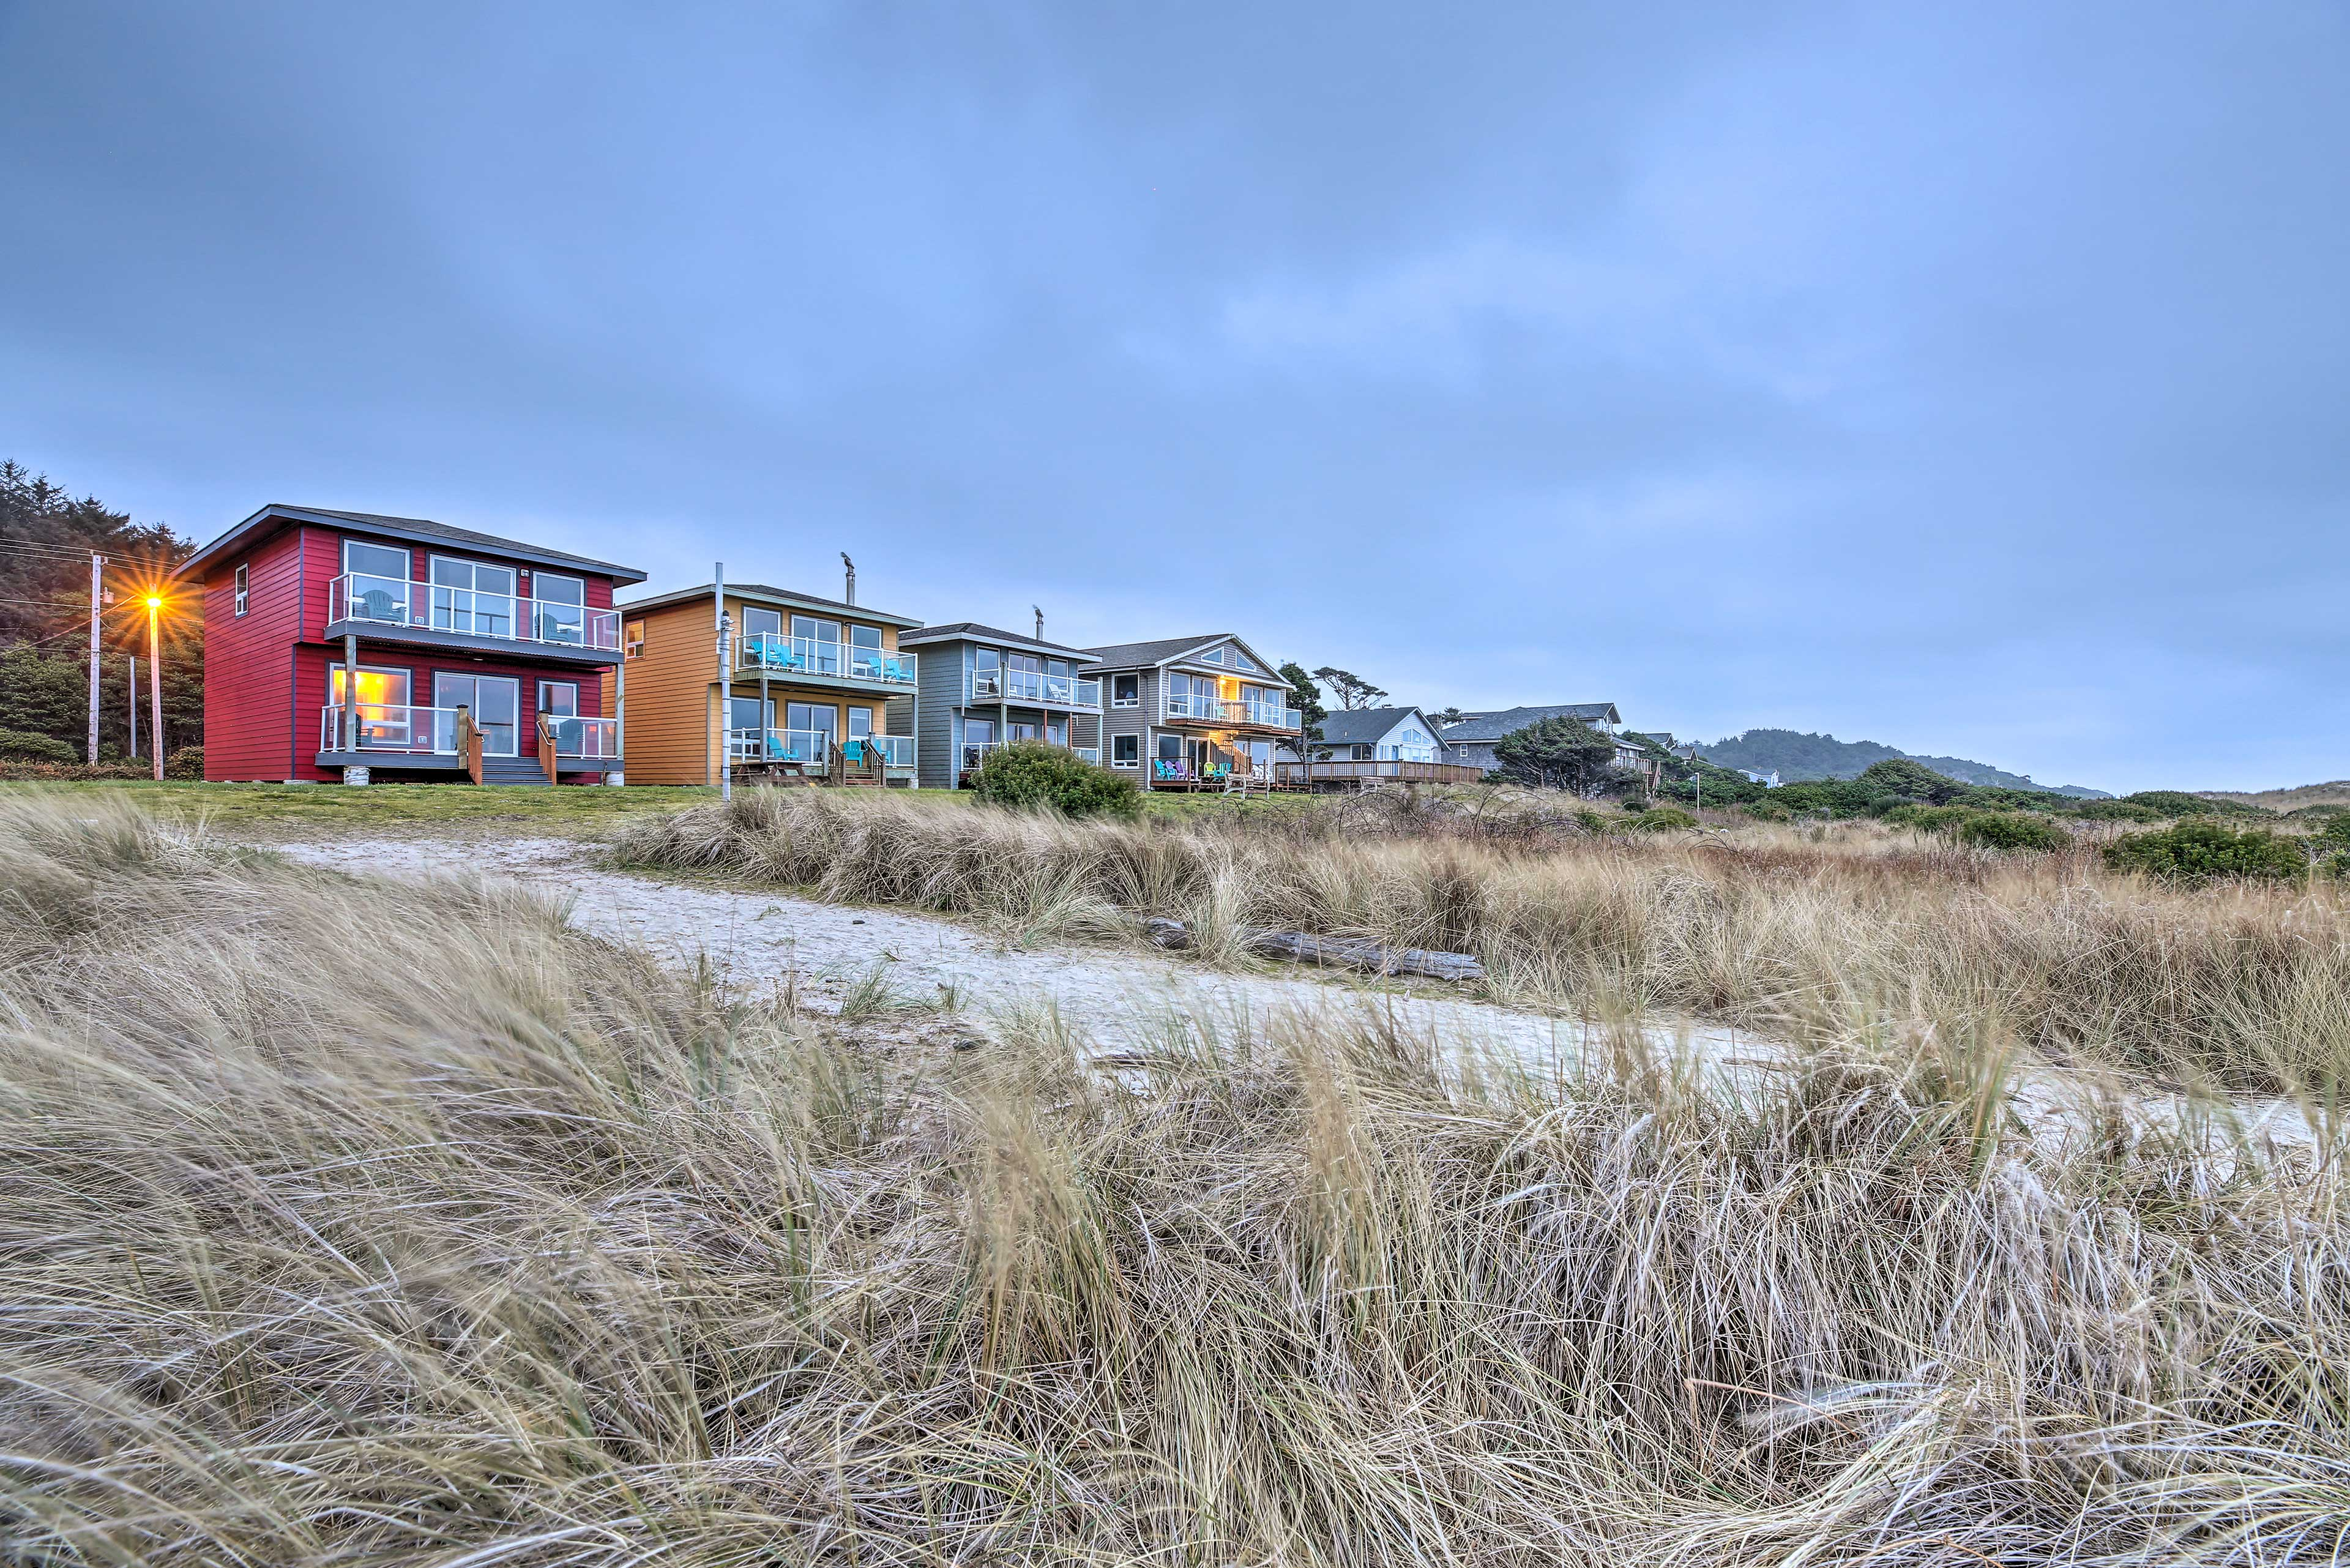 Several other vacation rental units are adjacent to this property.